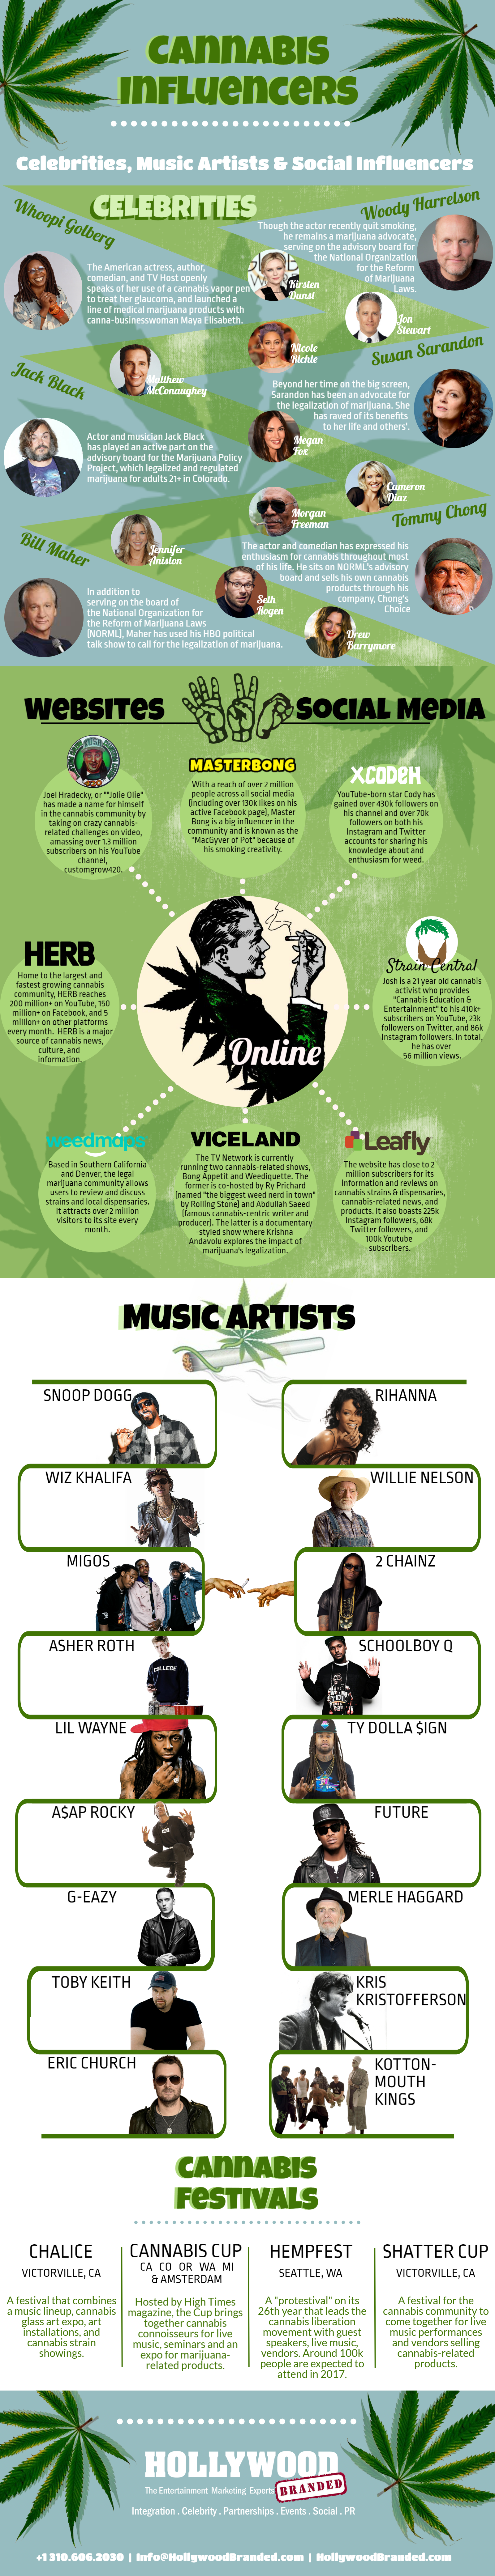 Cannabis Celebrity Influencers Infographic Hollywood Branded.png